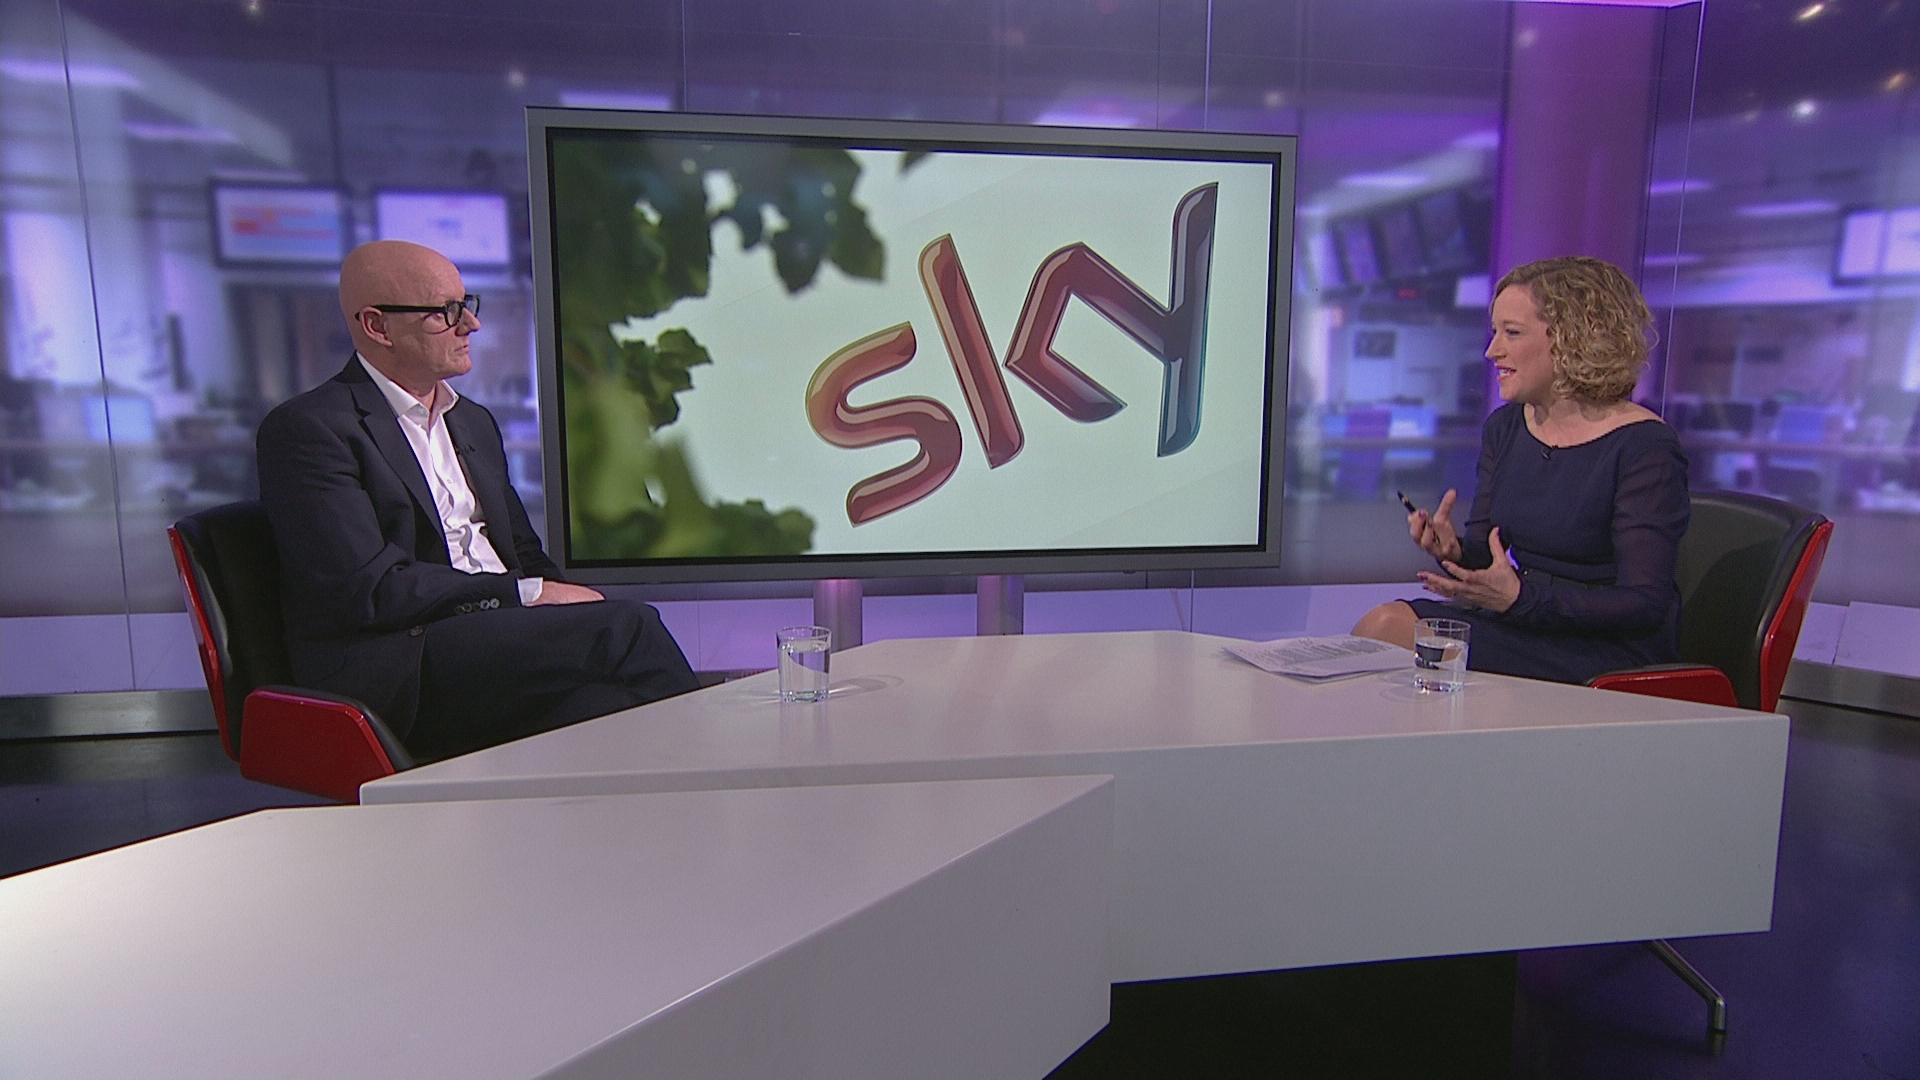 Sky interview